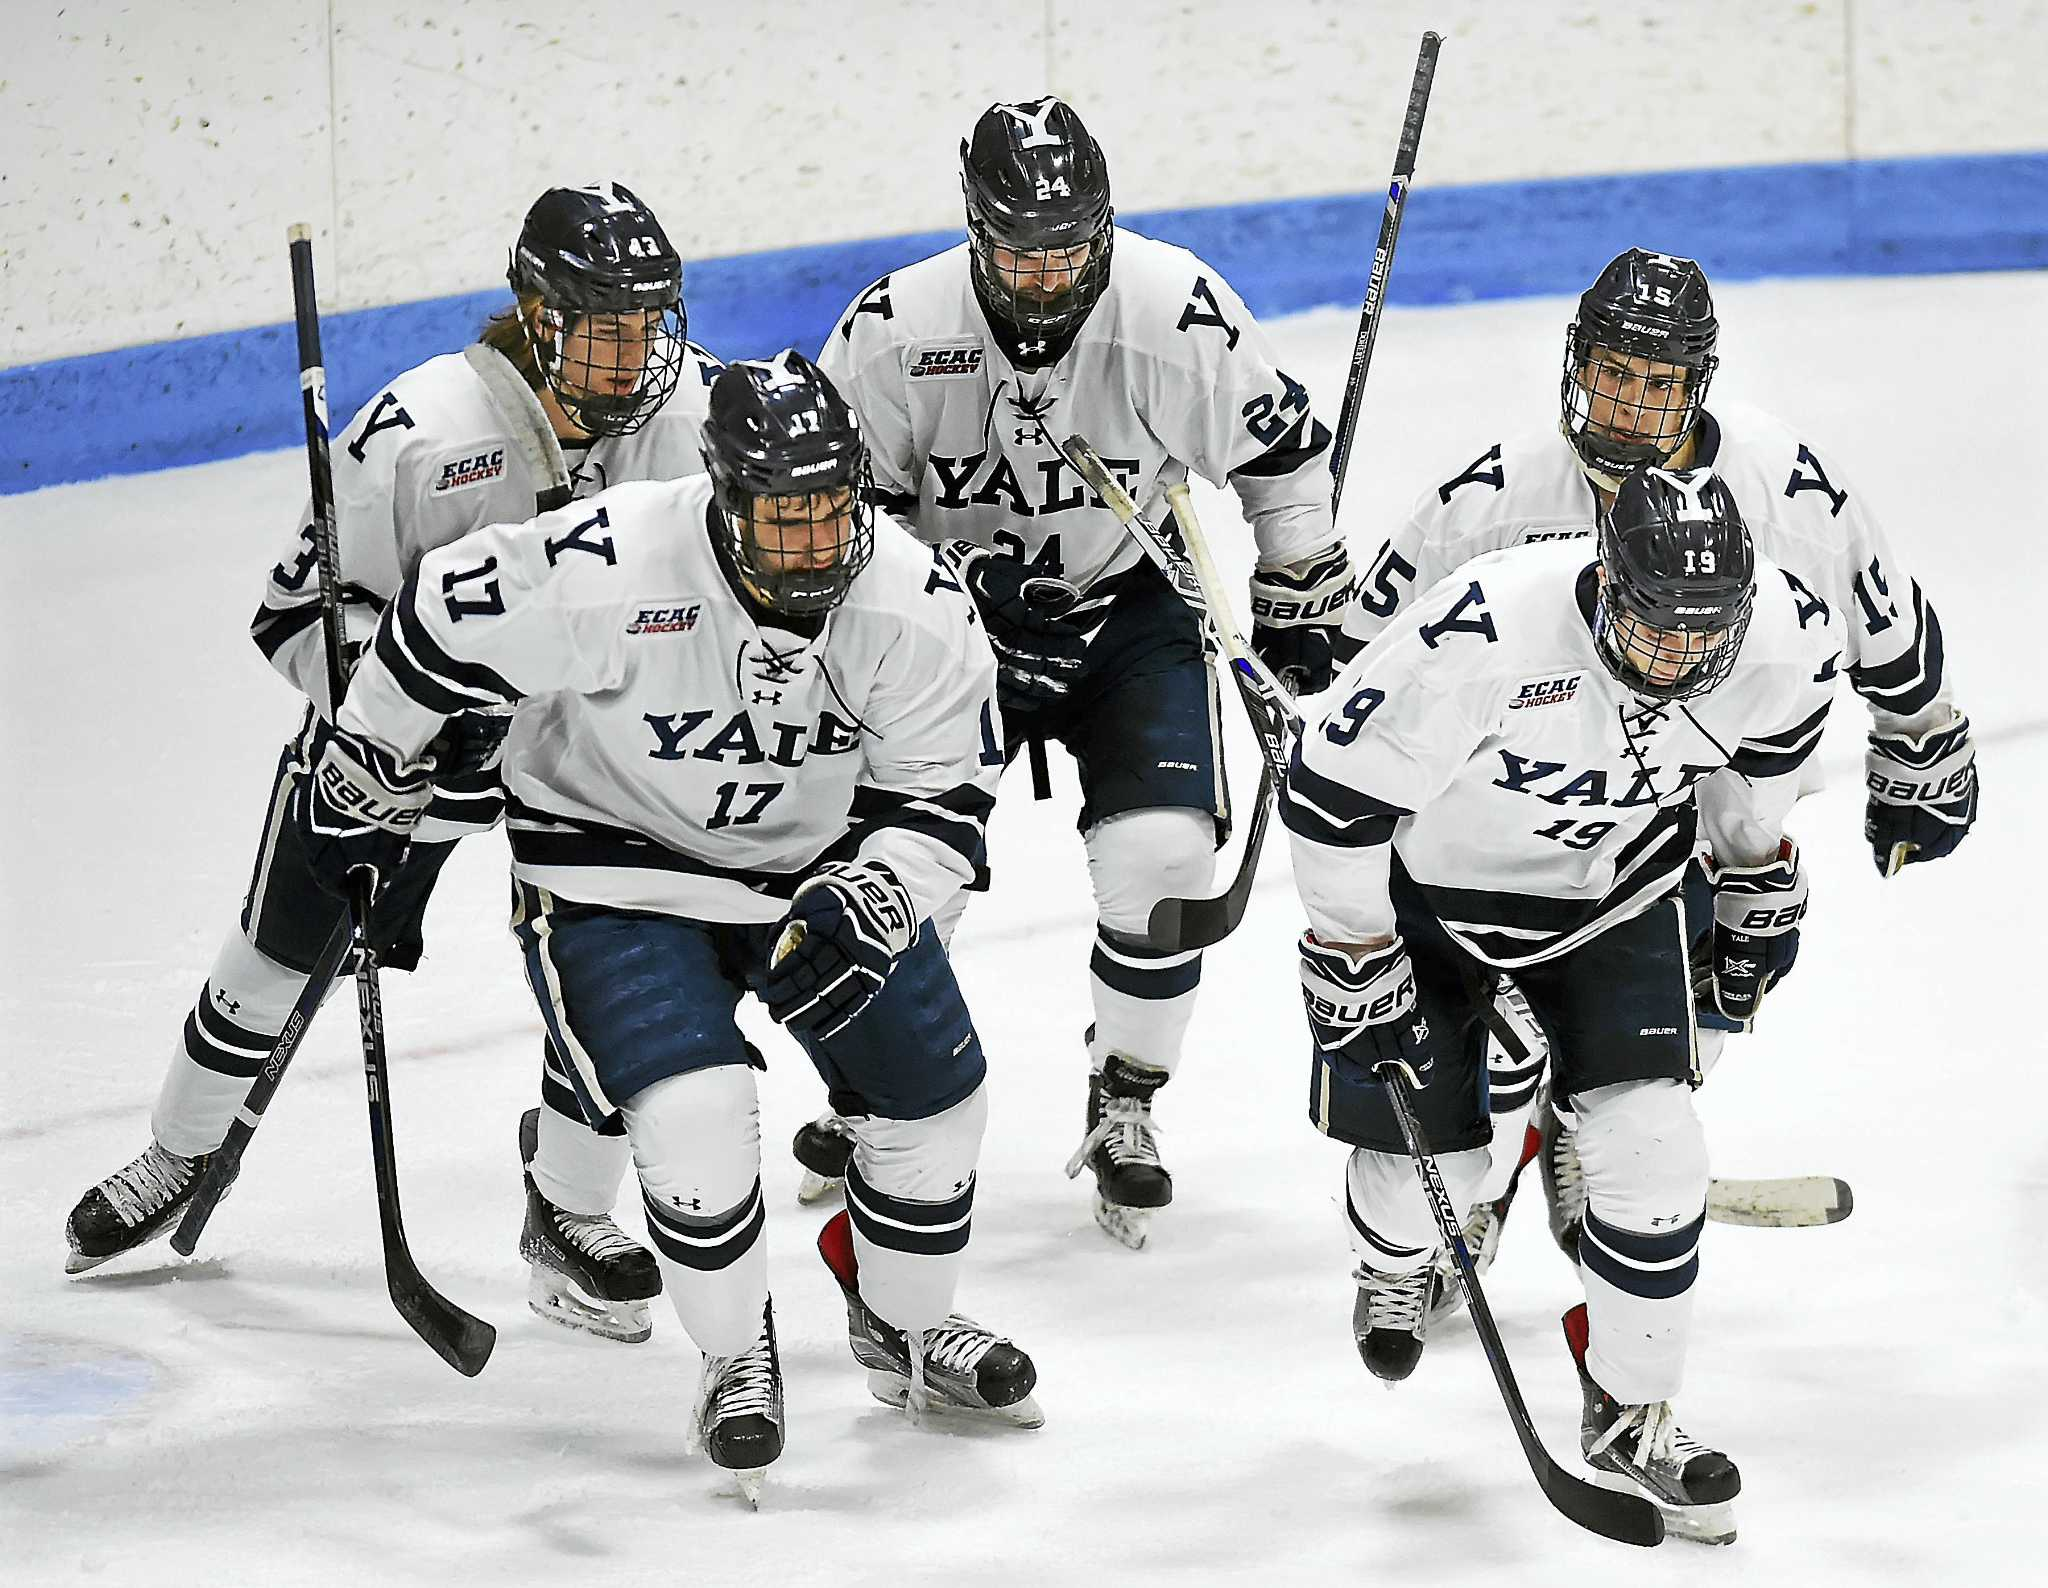 new products f2133 b01e9 Yale hockey team's 2017-18 schedule includes some stiff ...